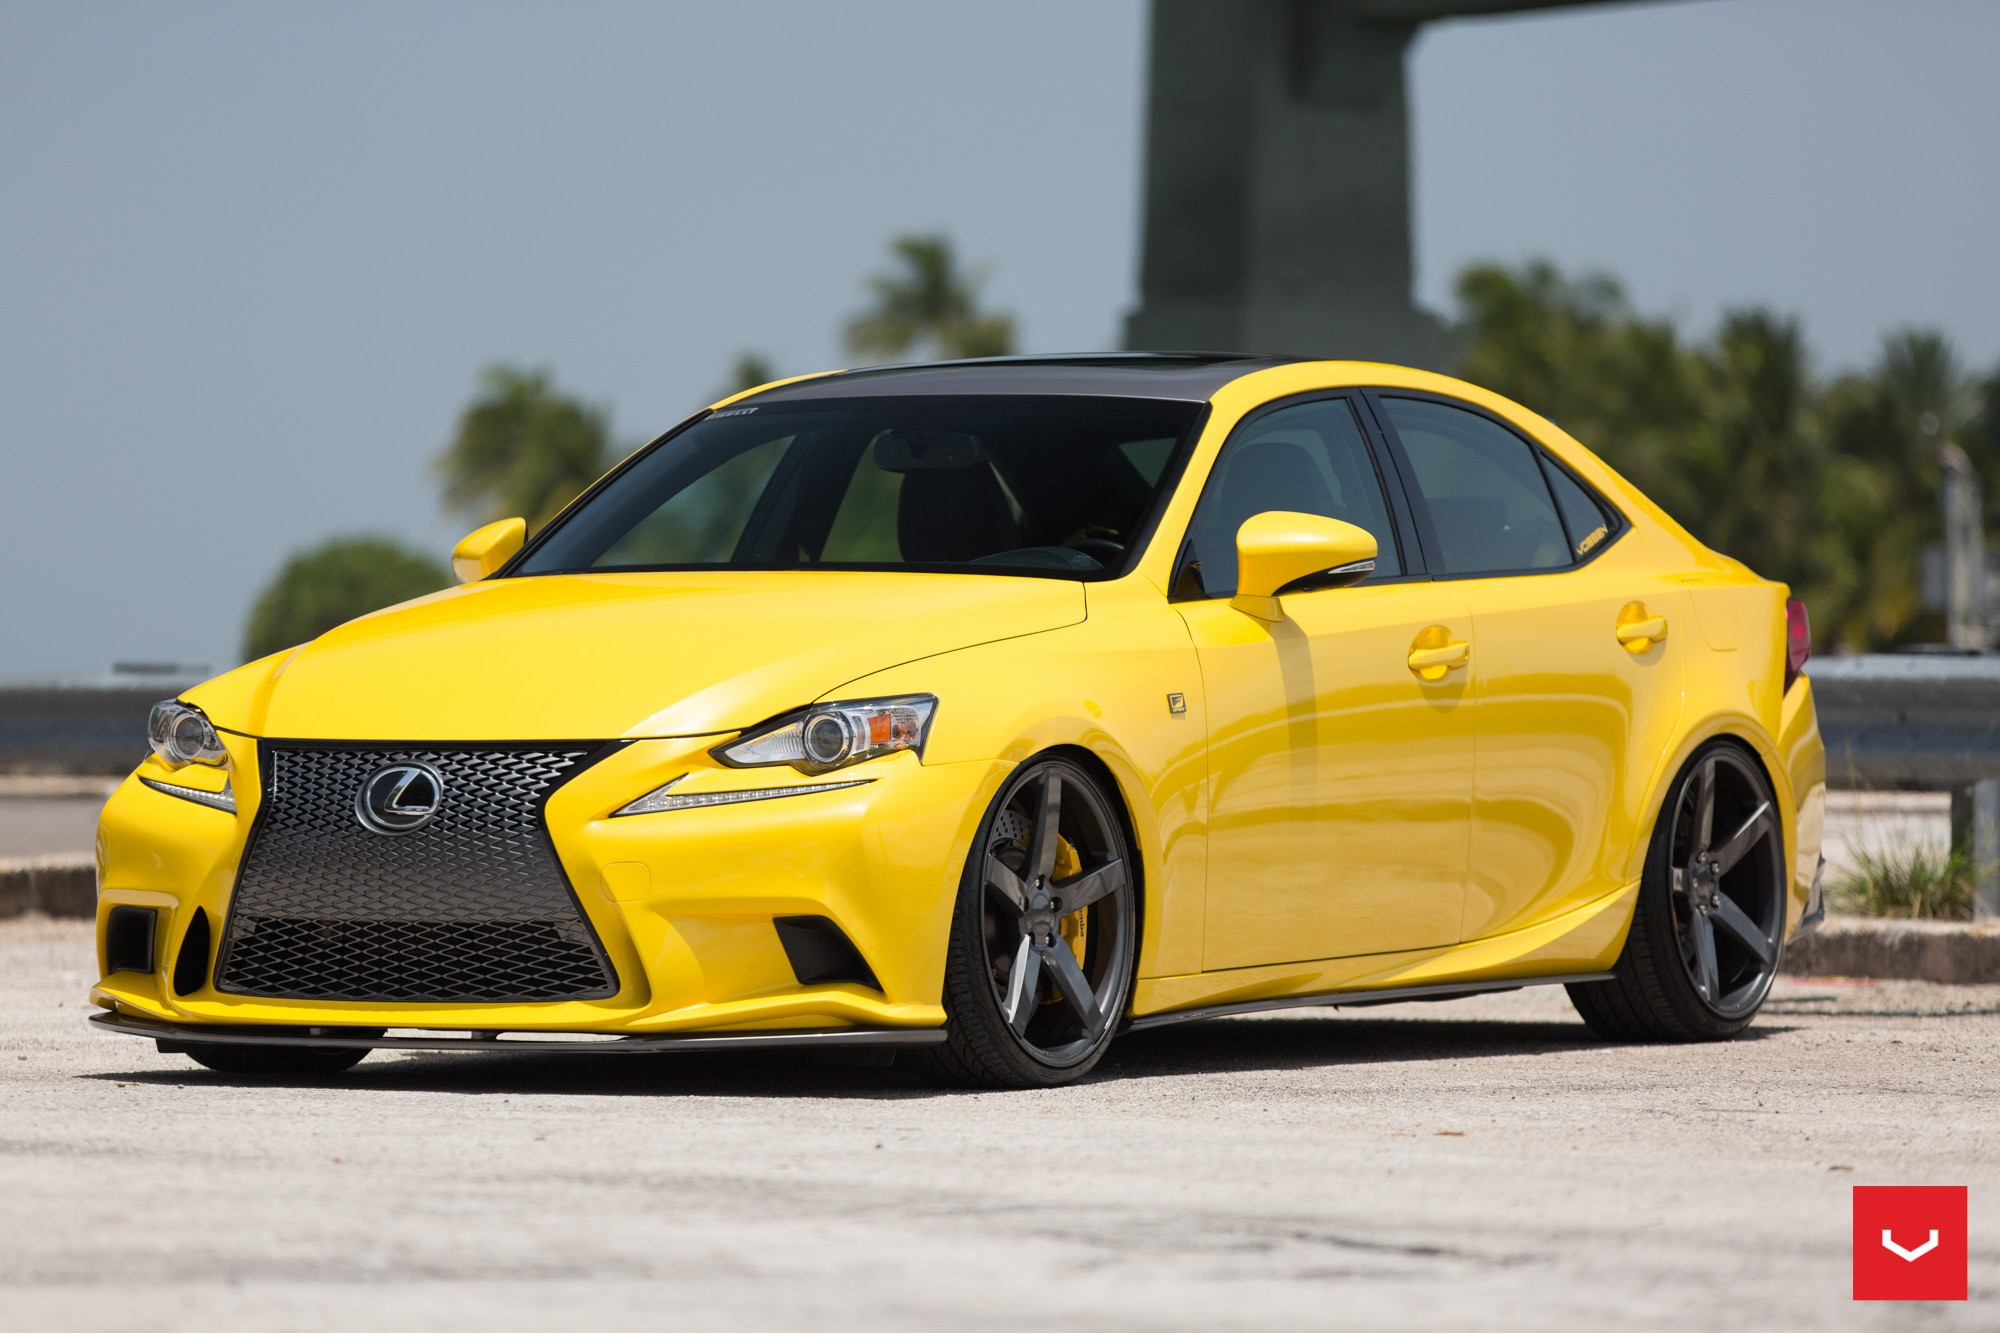 LFA Yellow Lexus IS 350 Sits On Vossen Wheels